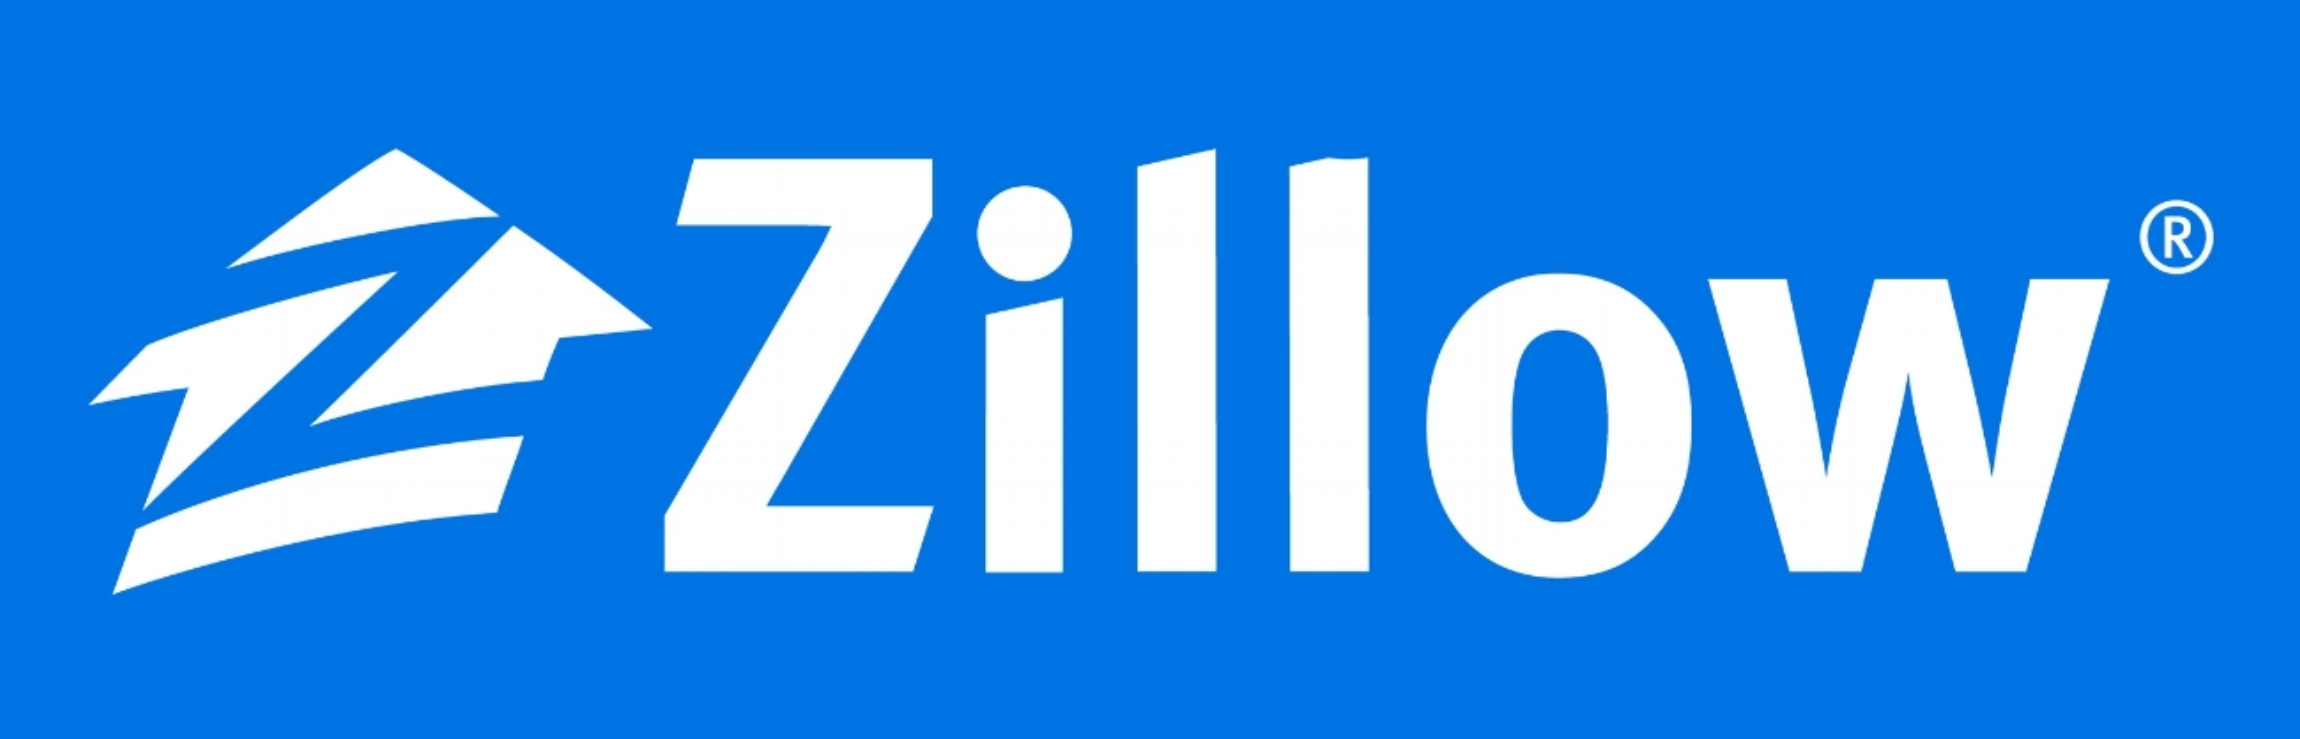 FIND US ON ZILLOW!  -